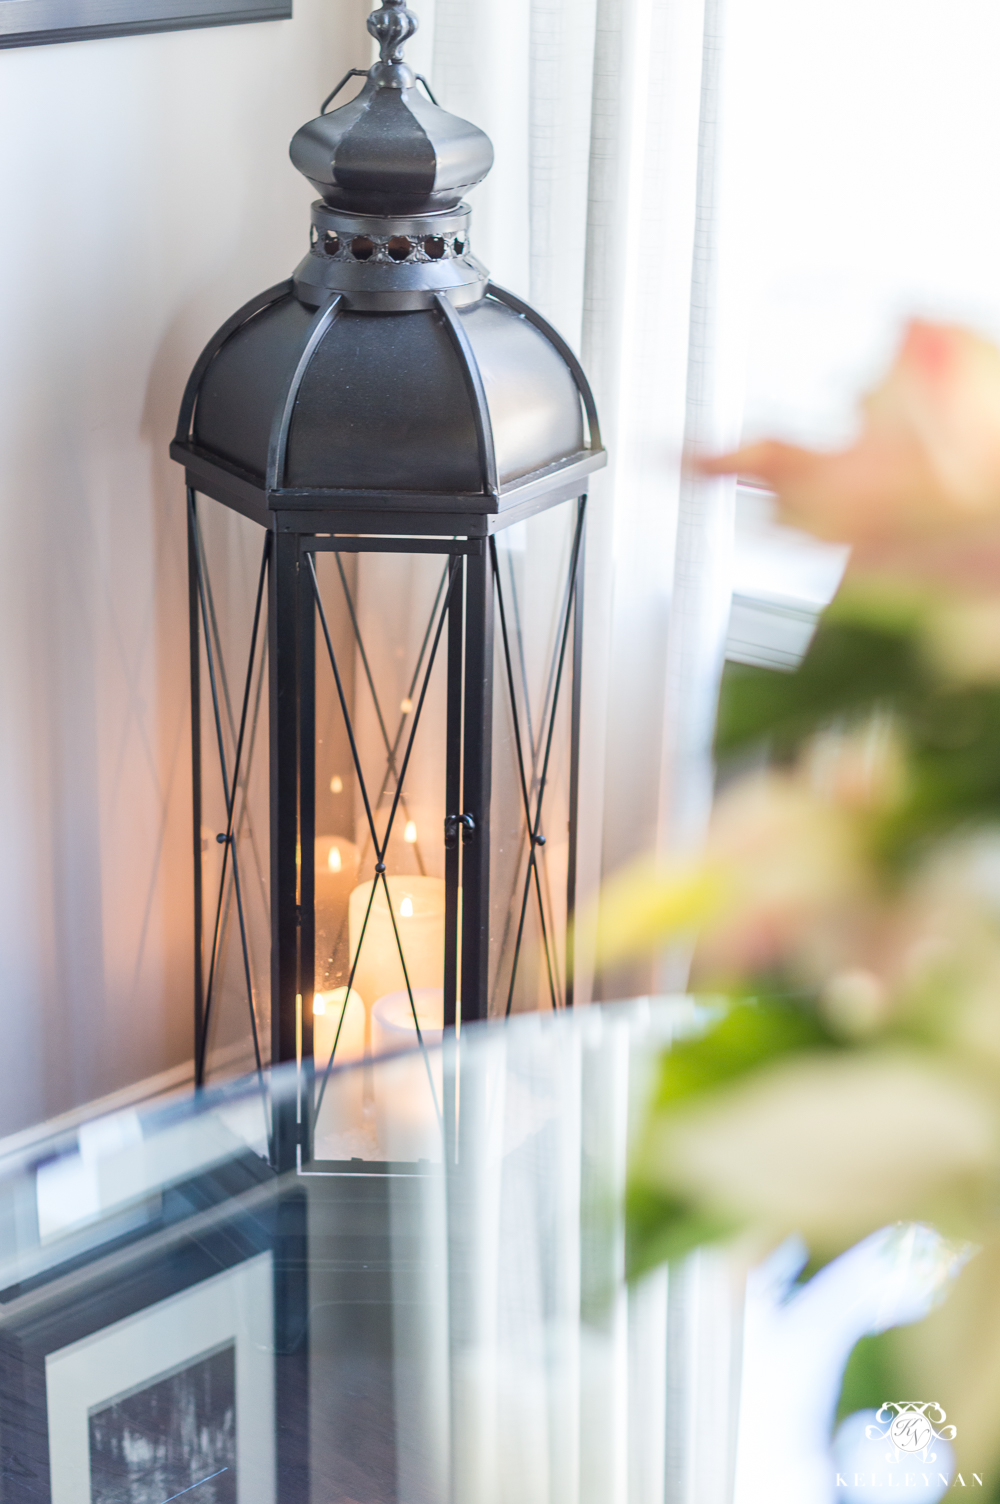 Oversized lanterns as corner decor